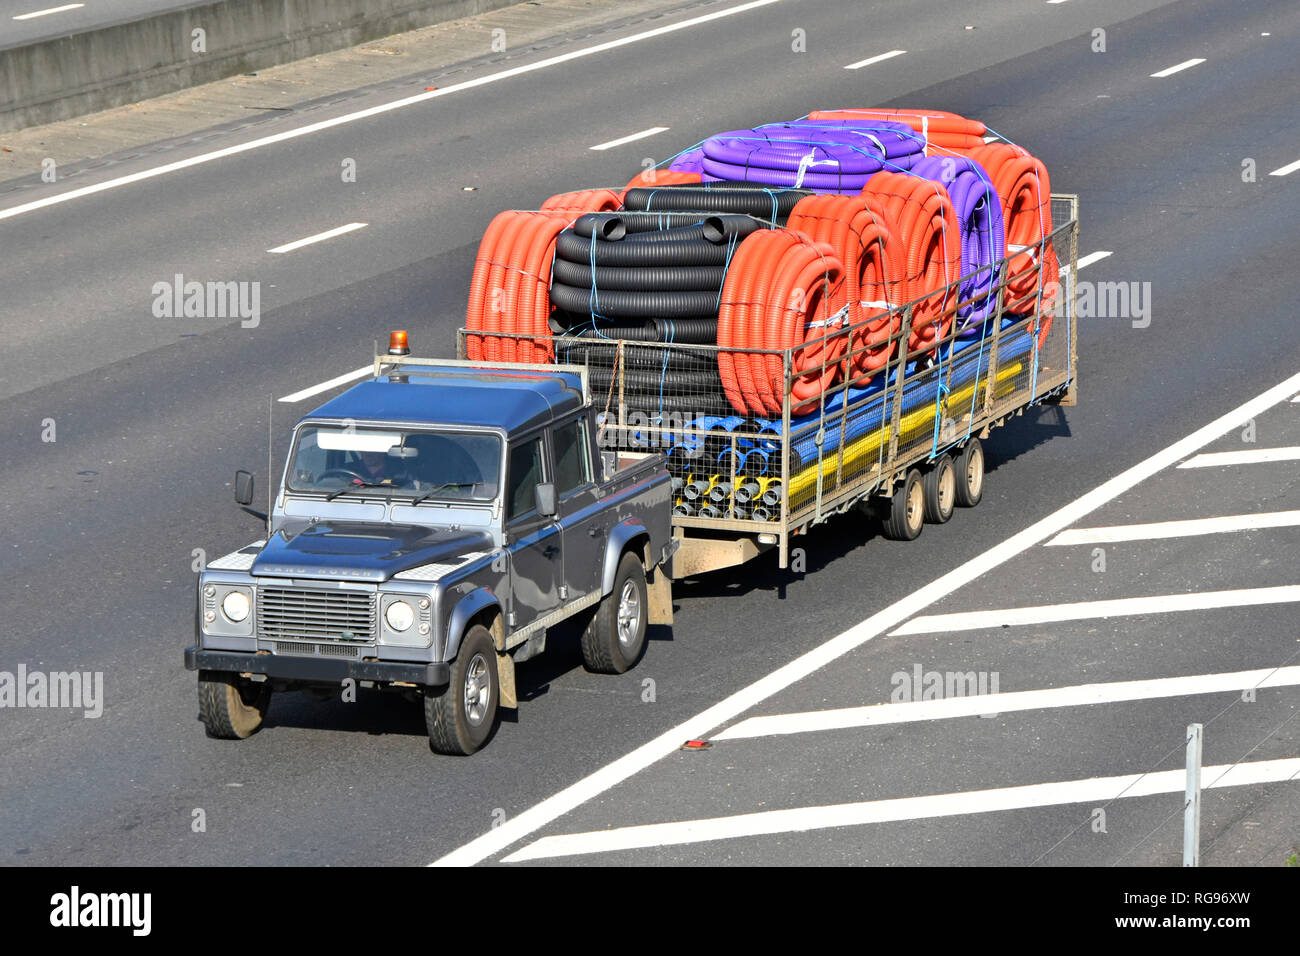 View looking down on Land Rover Defender & trailer transport of assorted colour coil & straight flexible plastic pipe tubing driving along UK motorway - Stock Image